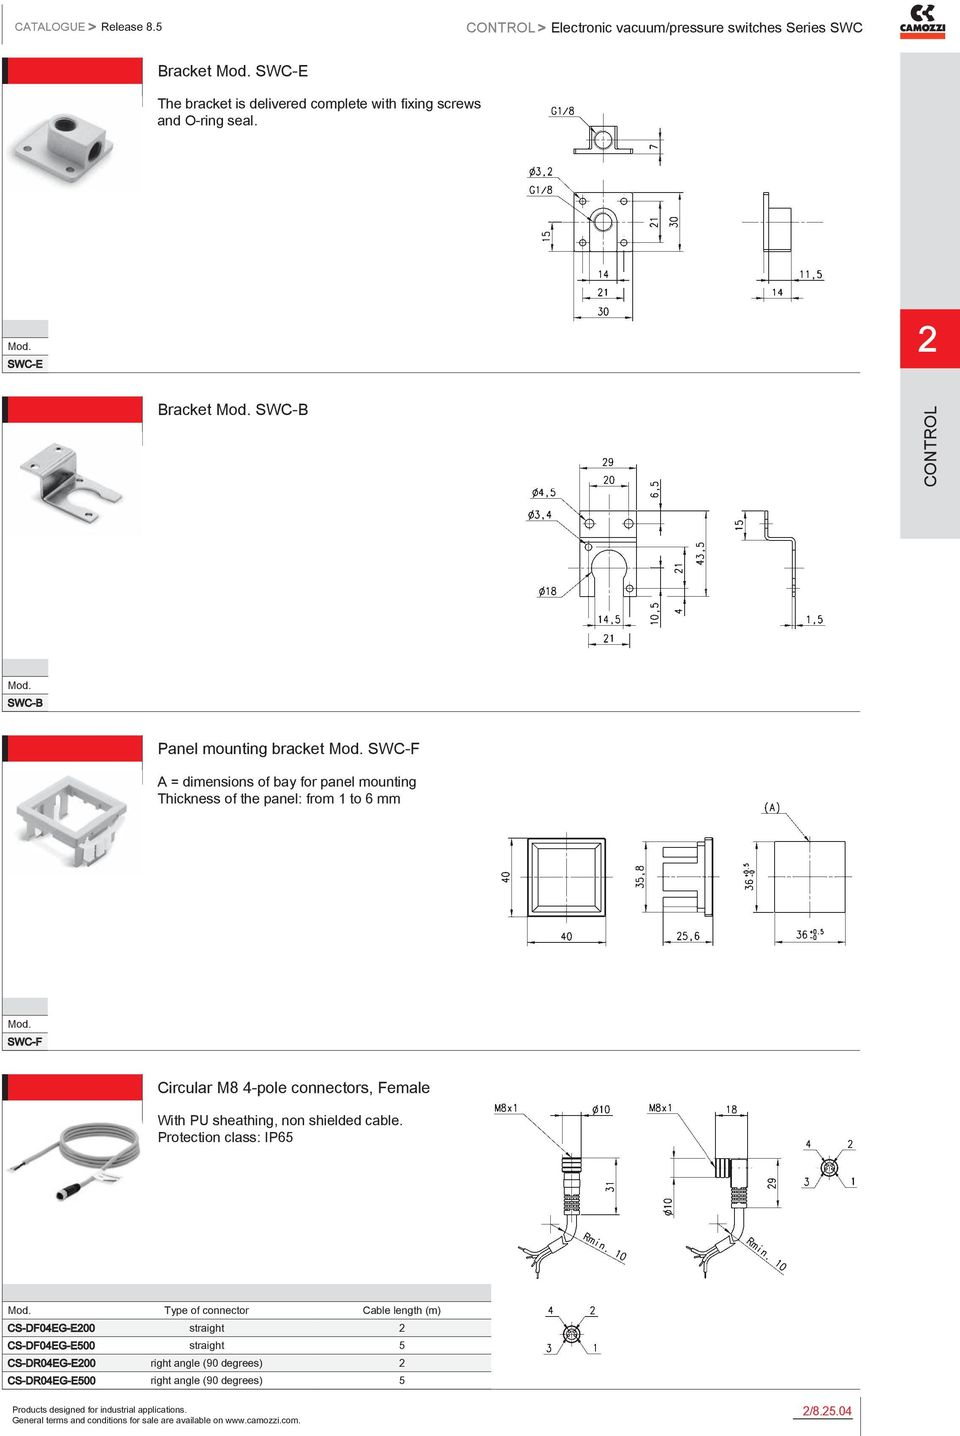 SWC-F A = dimensions of bay for panel mounting Thickness of the panel: from 1 to 6 mm Mod.